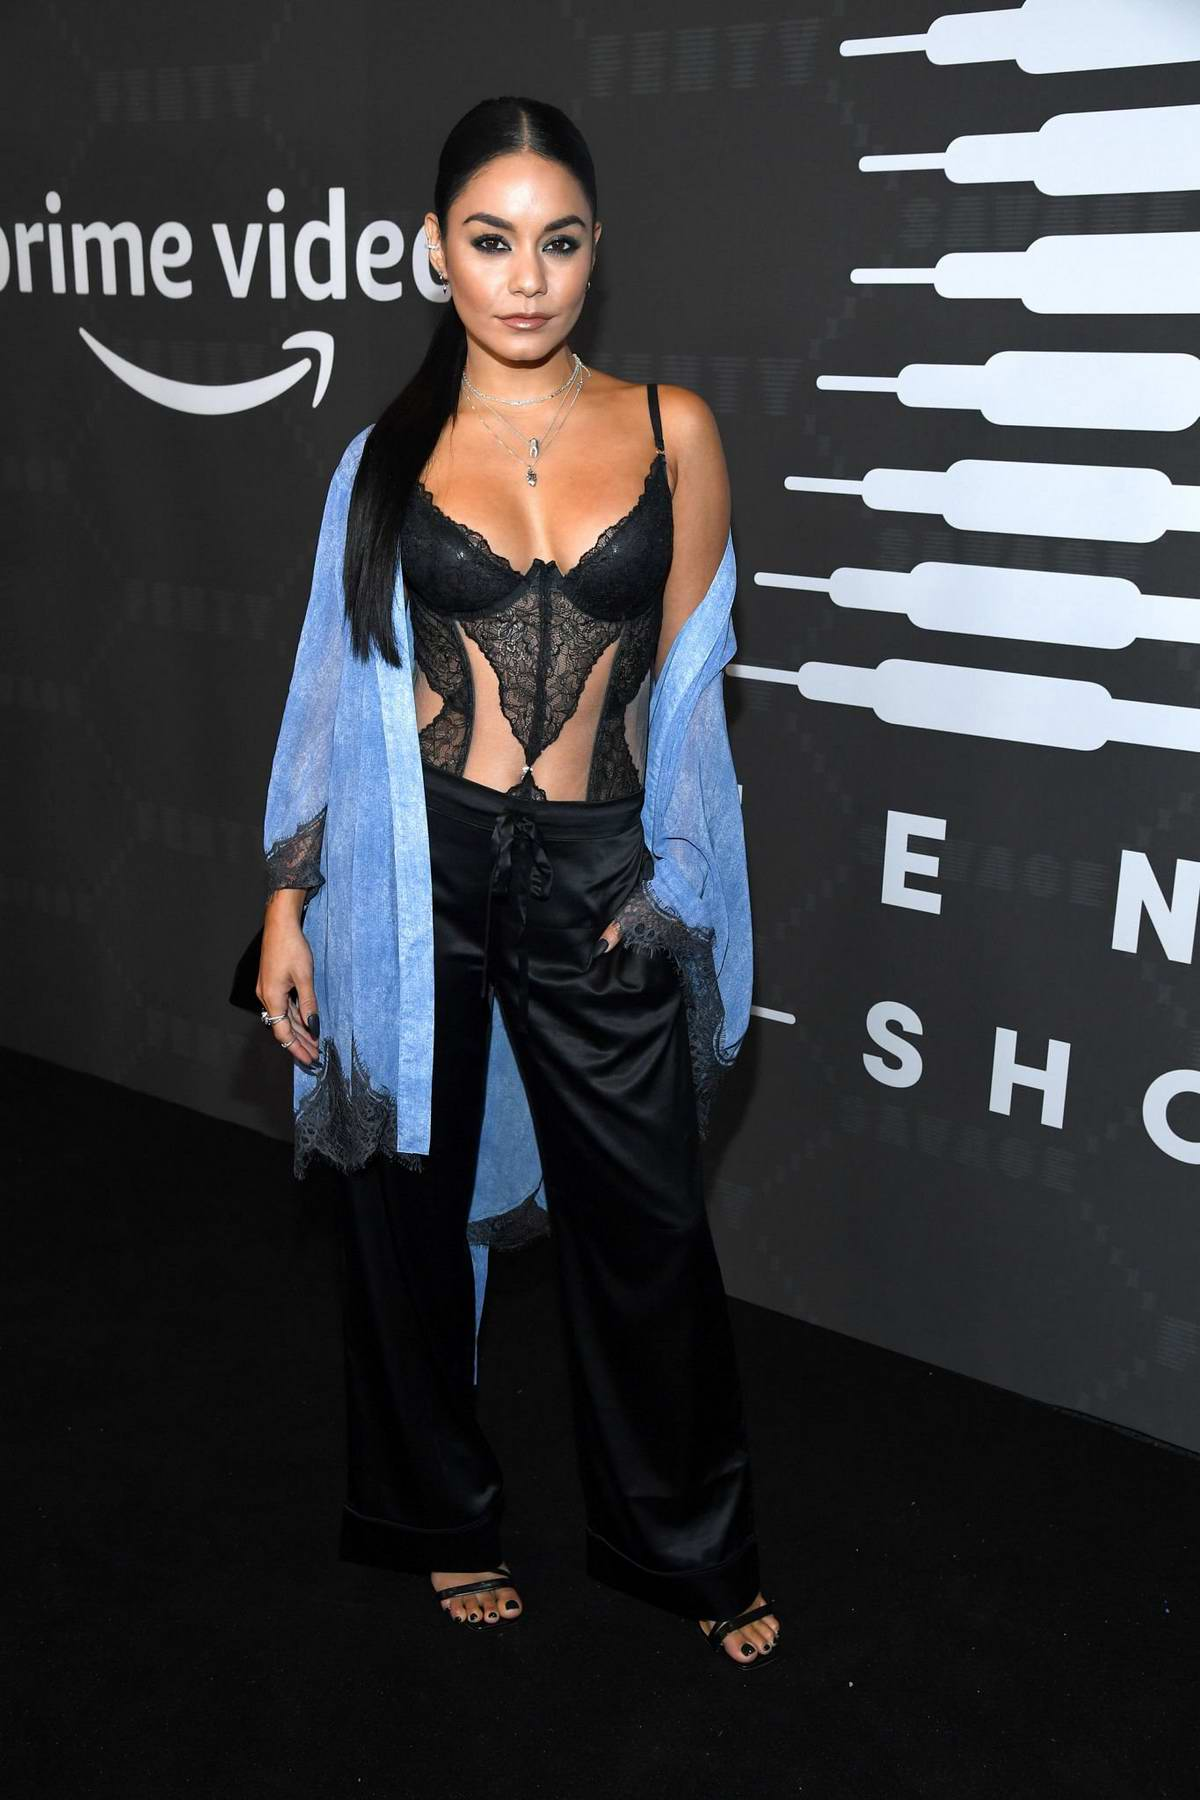 Vanessa Hudgens attends Savage X Fenty Show during New York Fashion Week at Barclays Center in Brooklyn, New York City